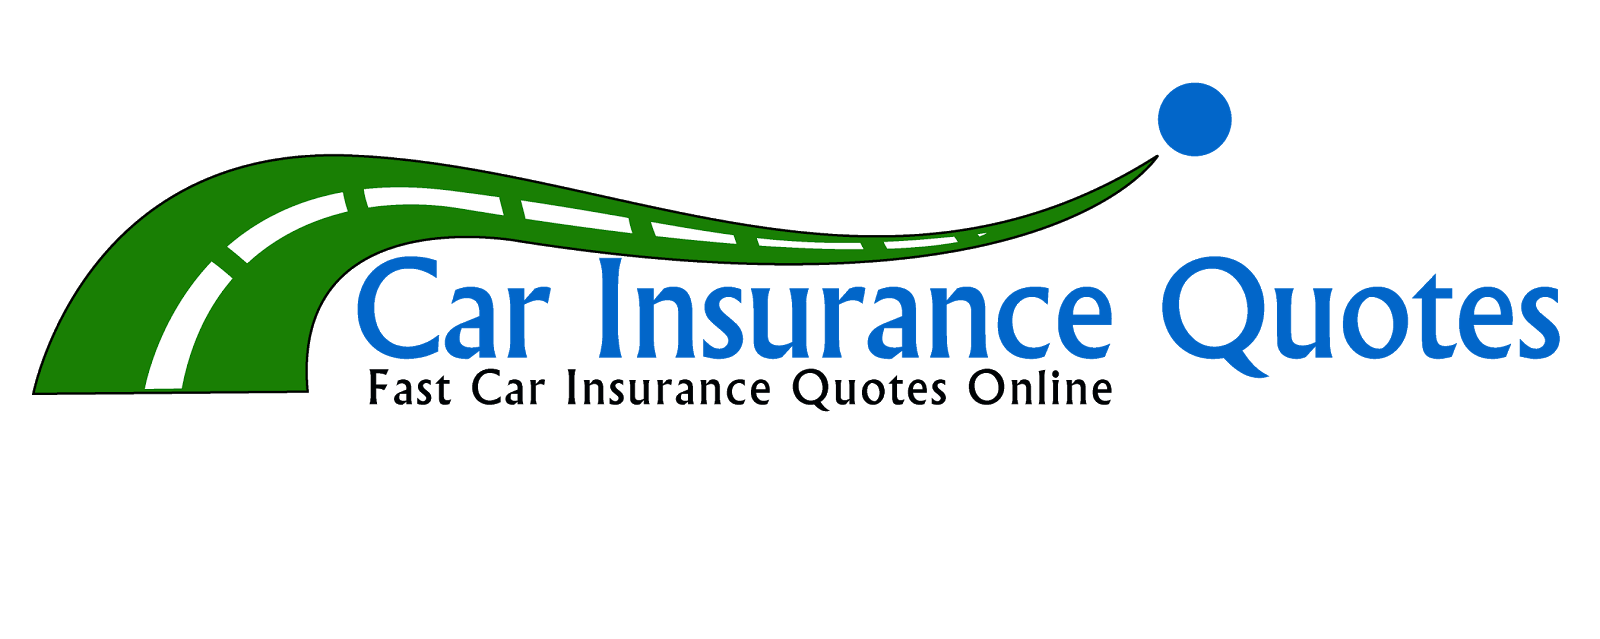 Online Insurance Quotes Amazing Free Car Insurance Quotes Online  Places To Visit  Pinterest . Review